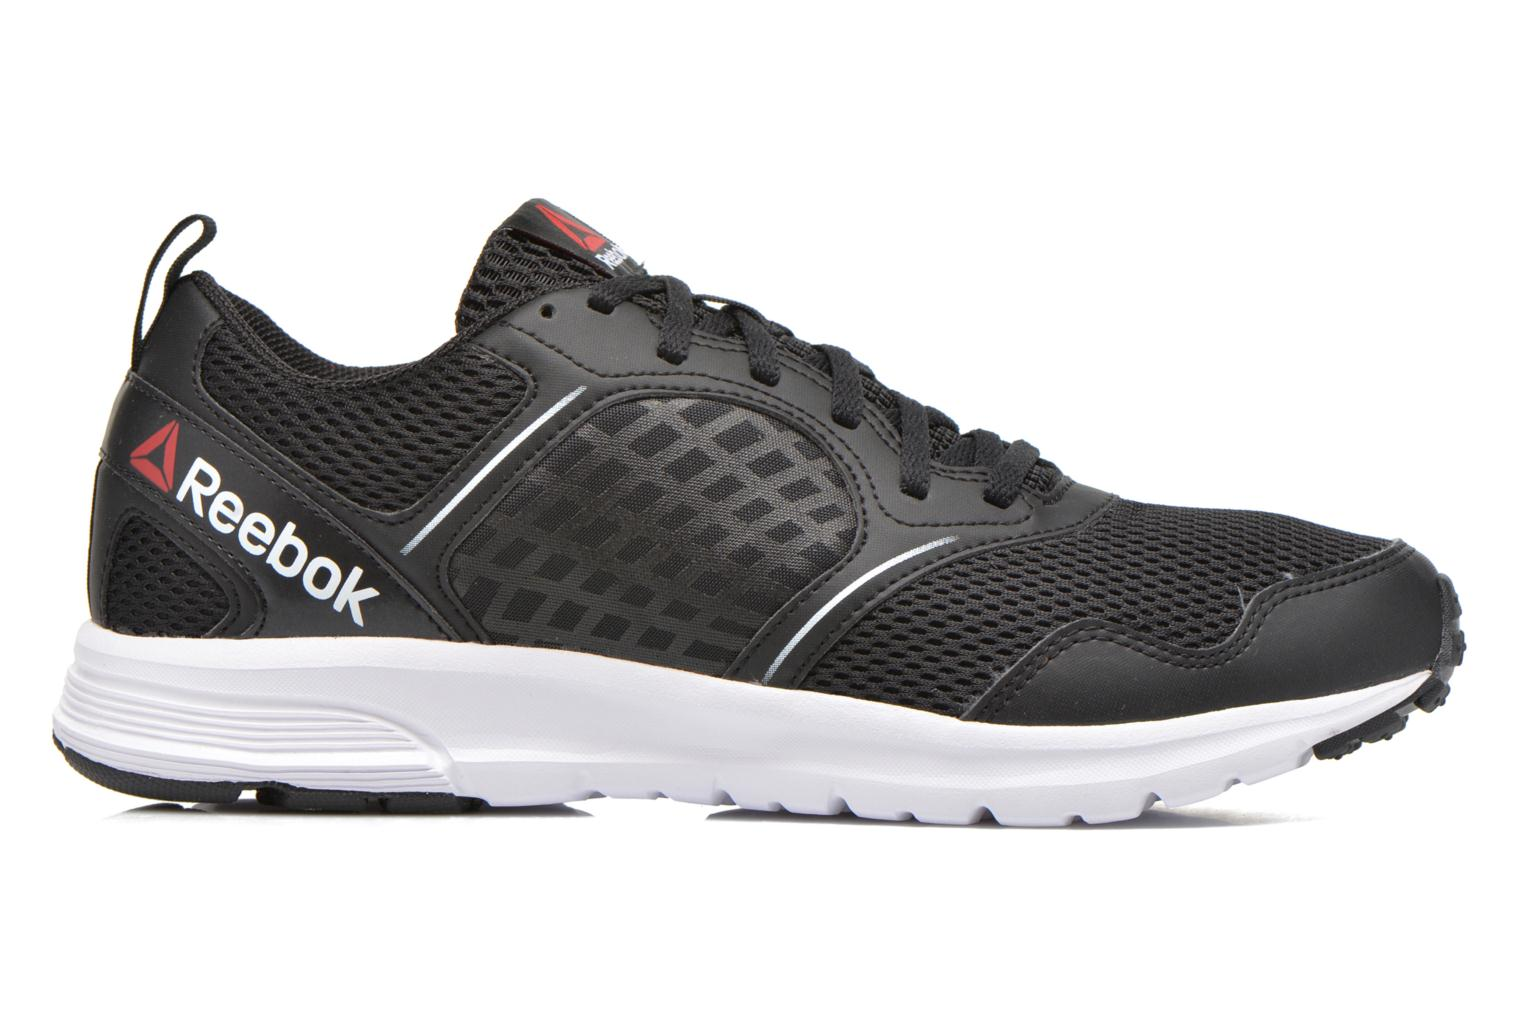 Reebok rush Black/white